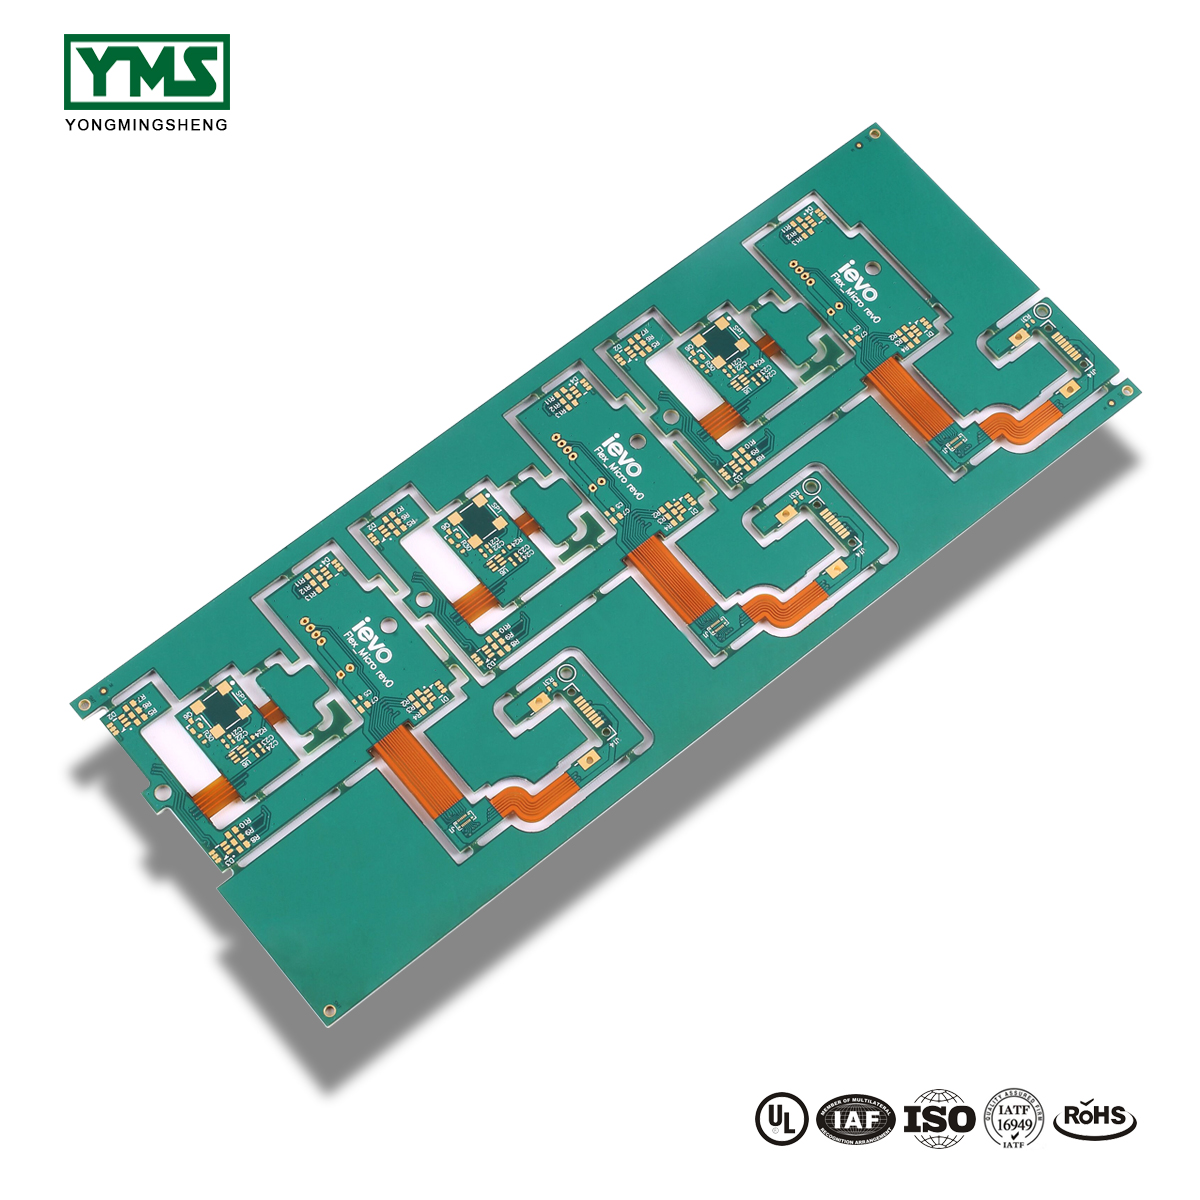 Free sample for High Density Interconnect Pcb(Hdi Pcb) - Immersion Gold,Blue Soldermask flex-rigid Board | YMS PCB – Yongmingsheng